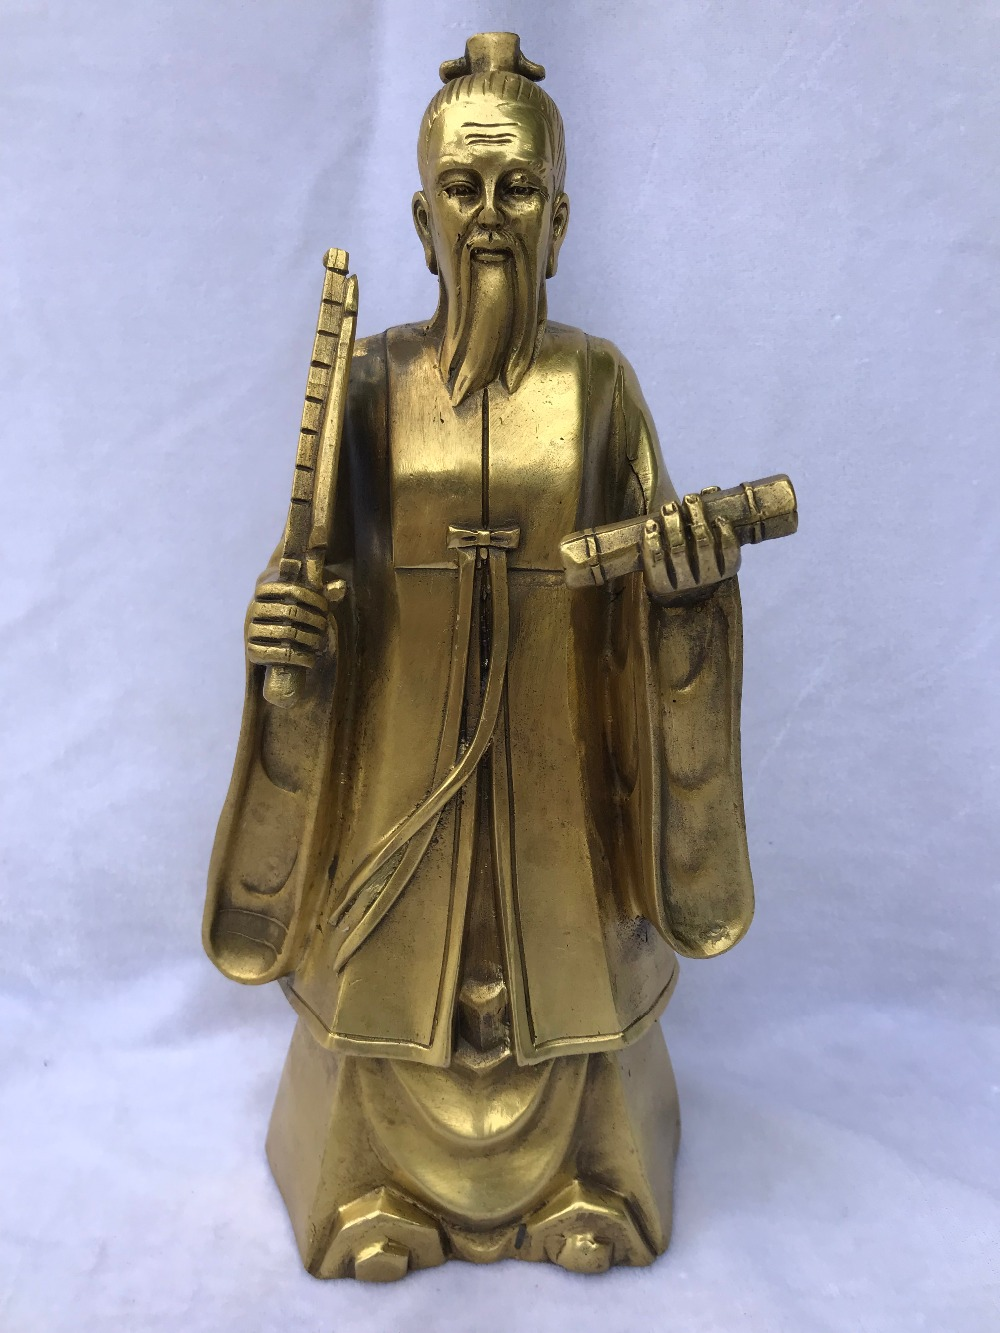 Chinese Brass Copper Sculpture Mythology Figure Jiang Ziya Statue Statues For Decoration Home Decorations